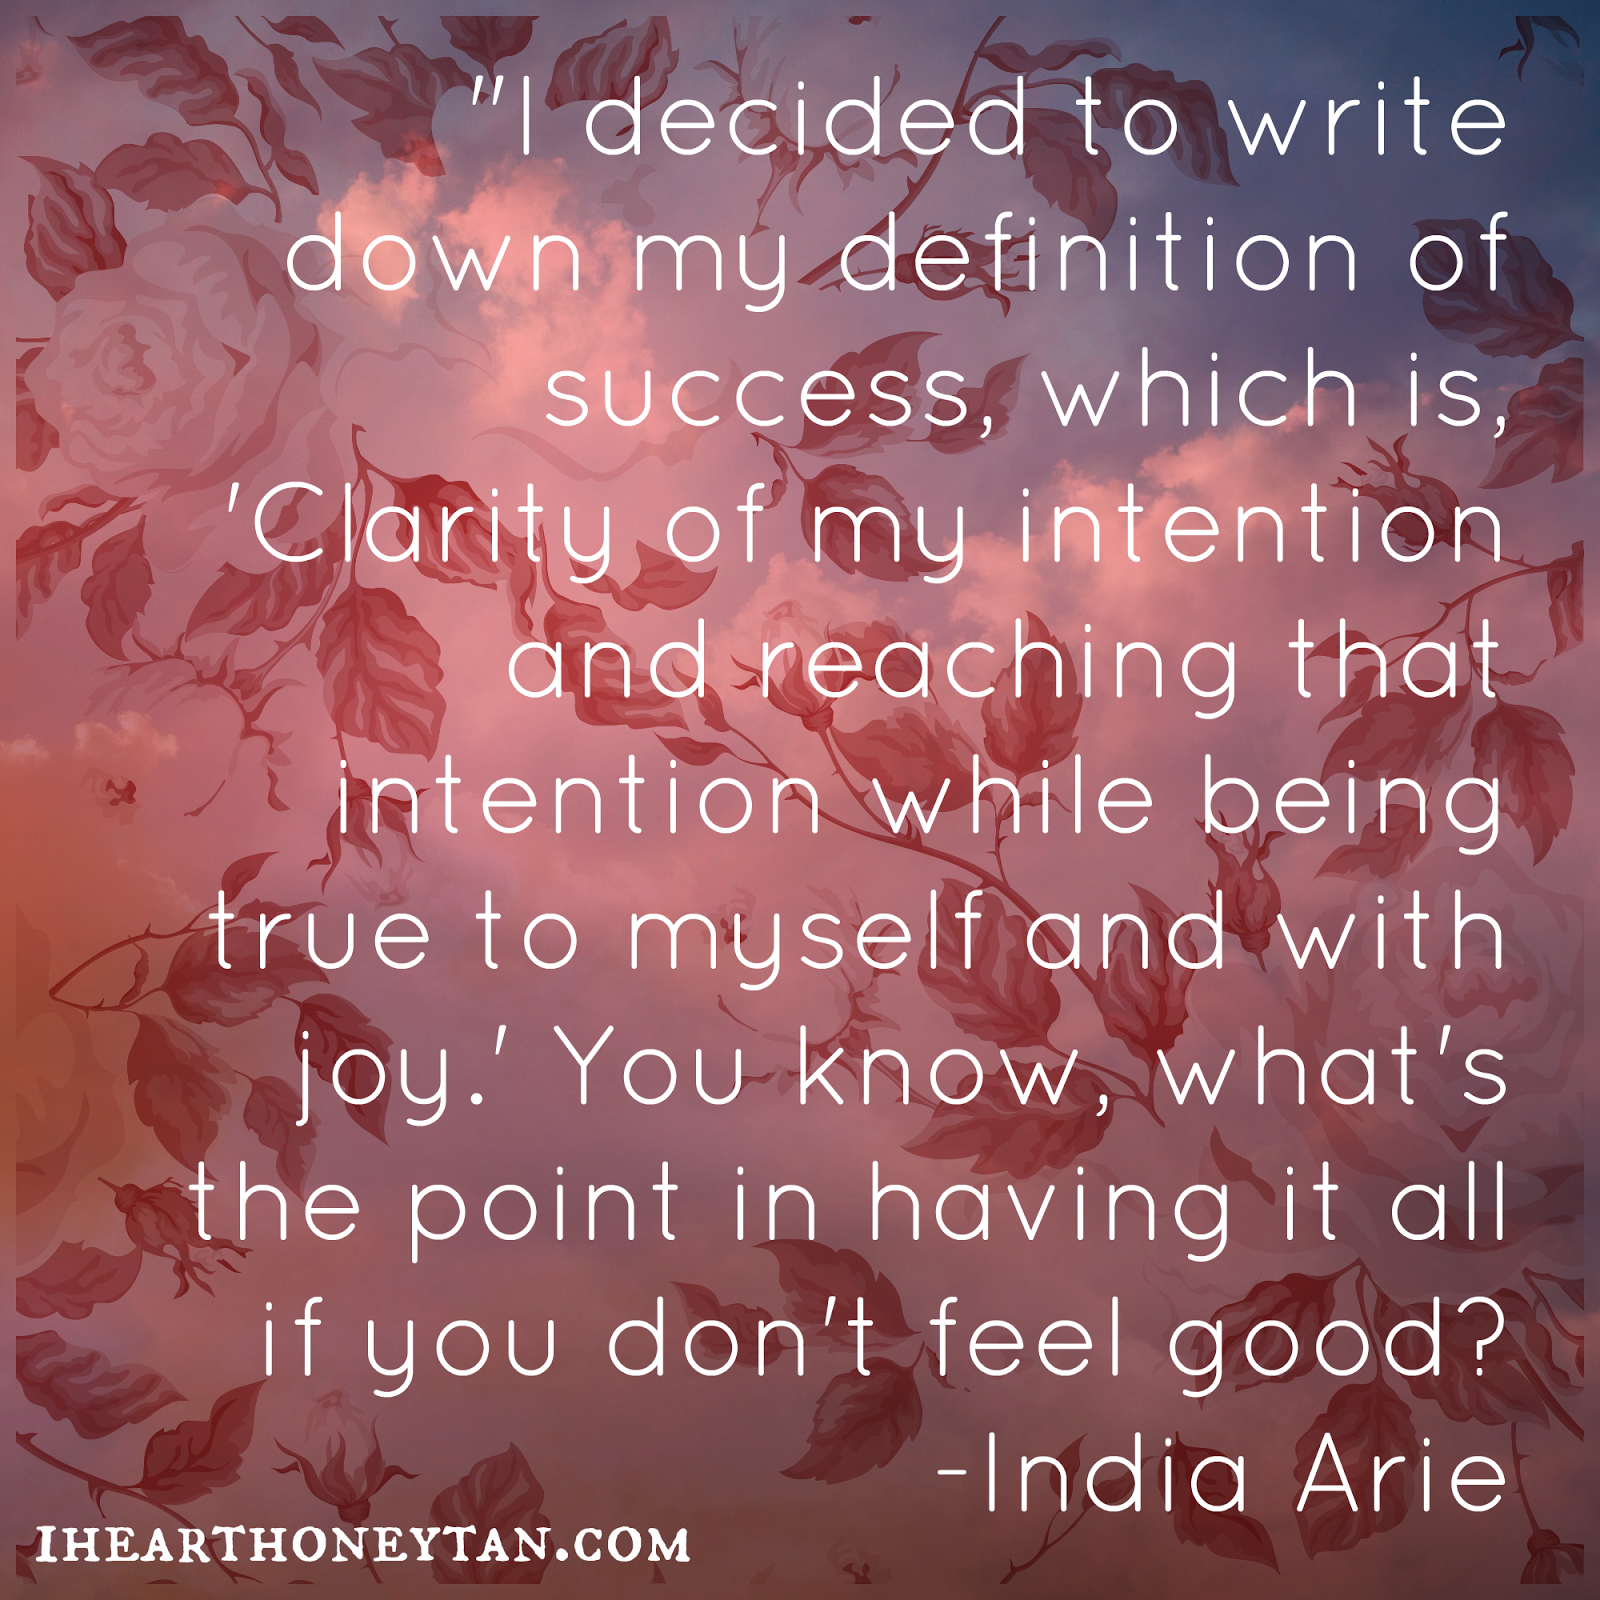 Best Clarity Quote By  India Arie~ I Decided To Write Down My Definition Of Success, Which As, 'Clarity Of My Intention And Reaching While Being True To Myself And With Joy.'..